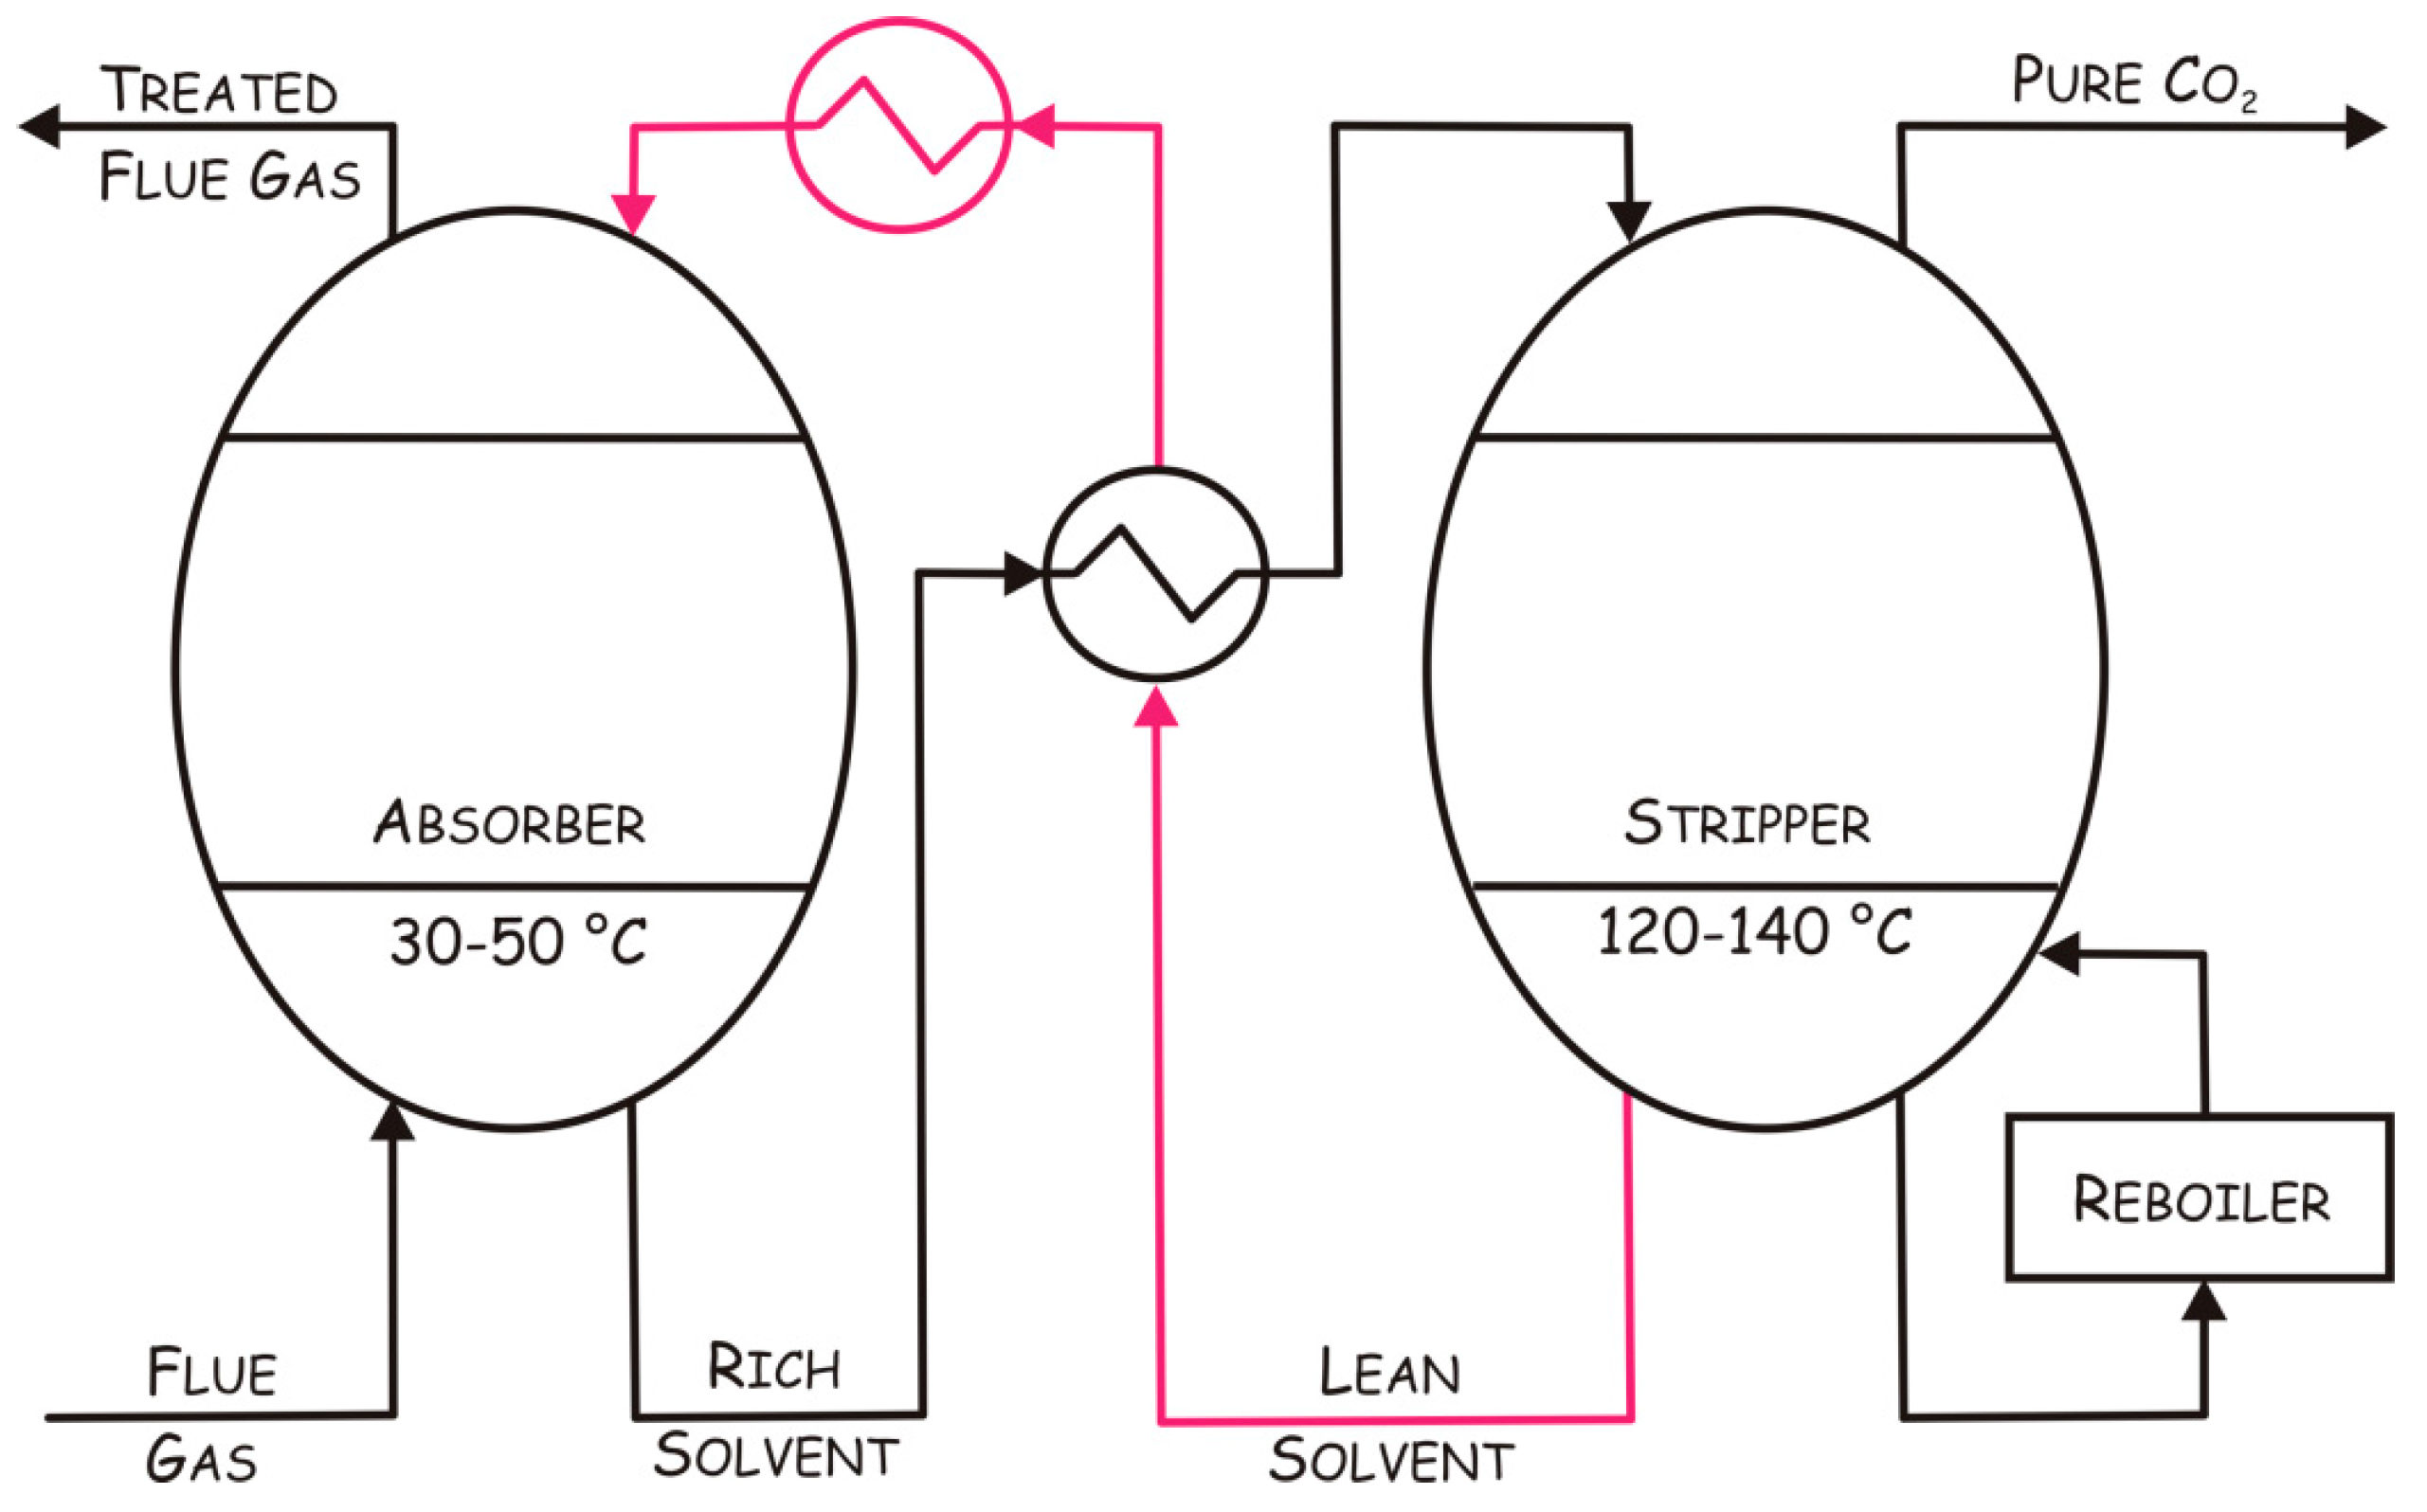 hummer h3 relay box diagram